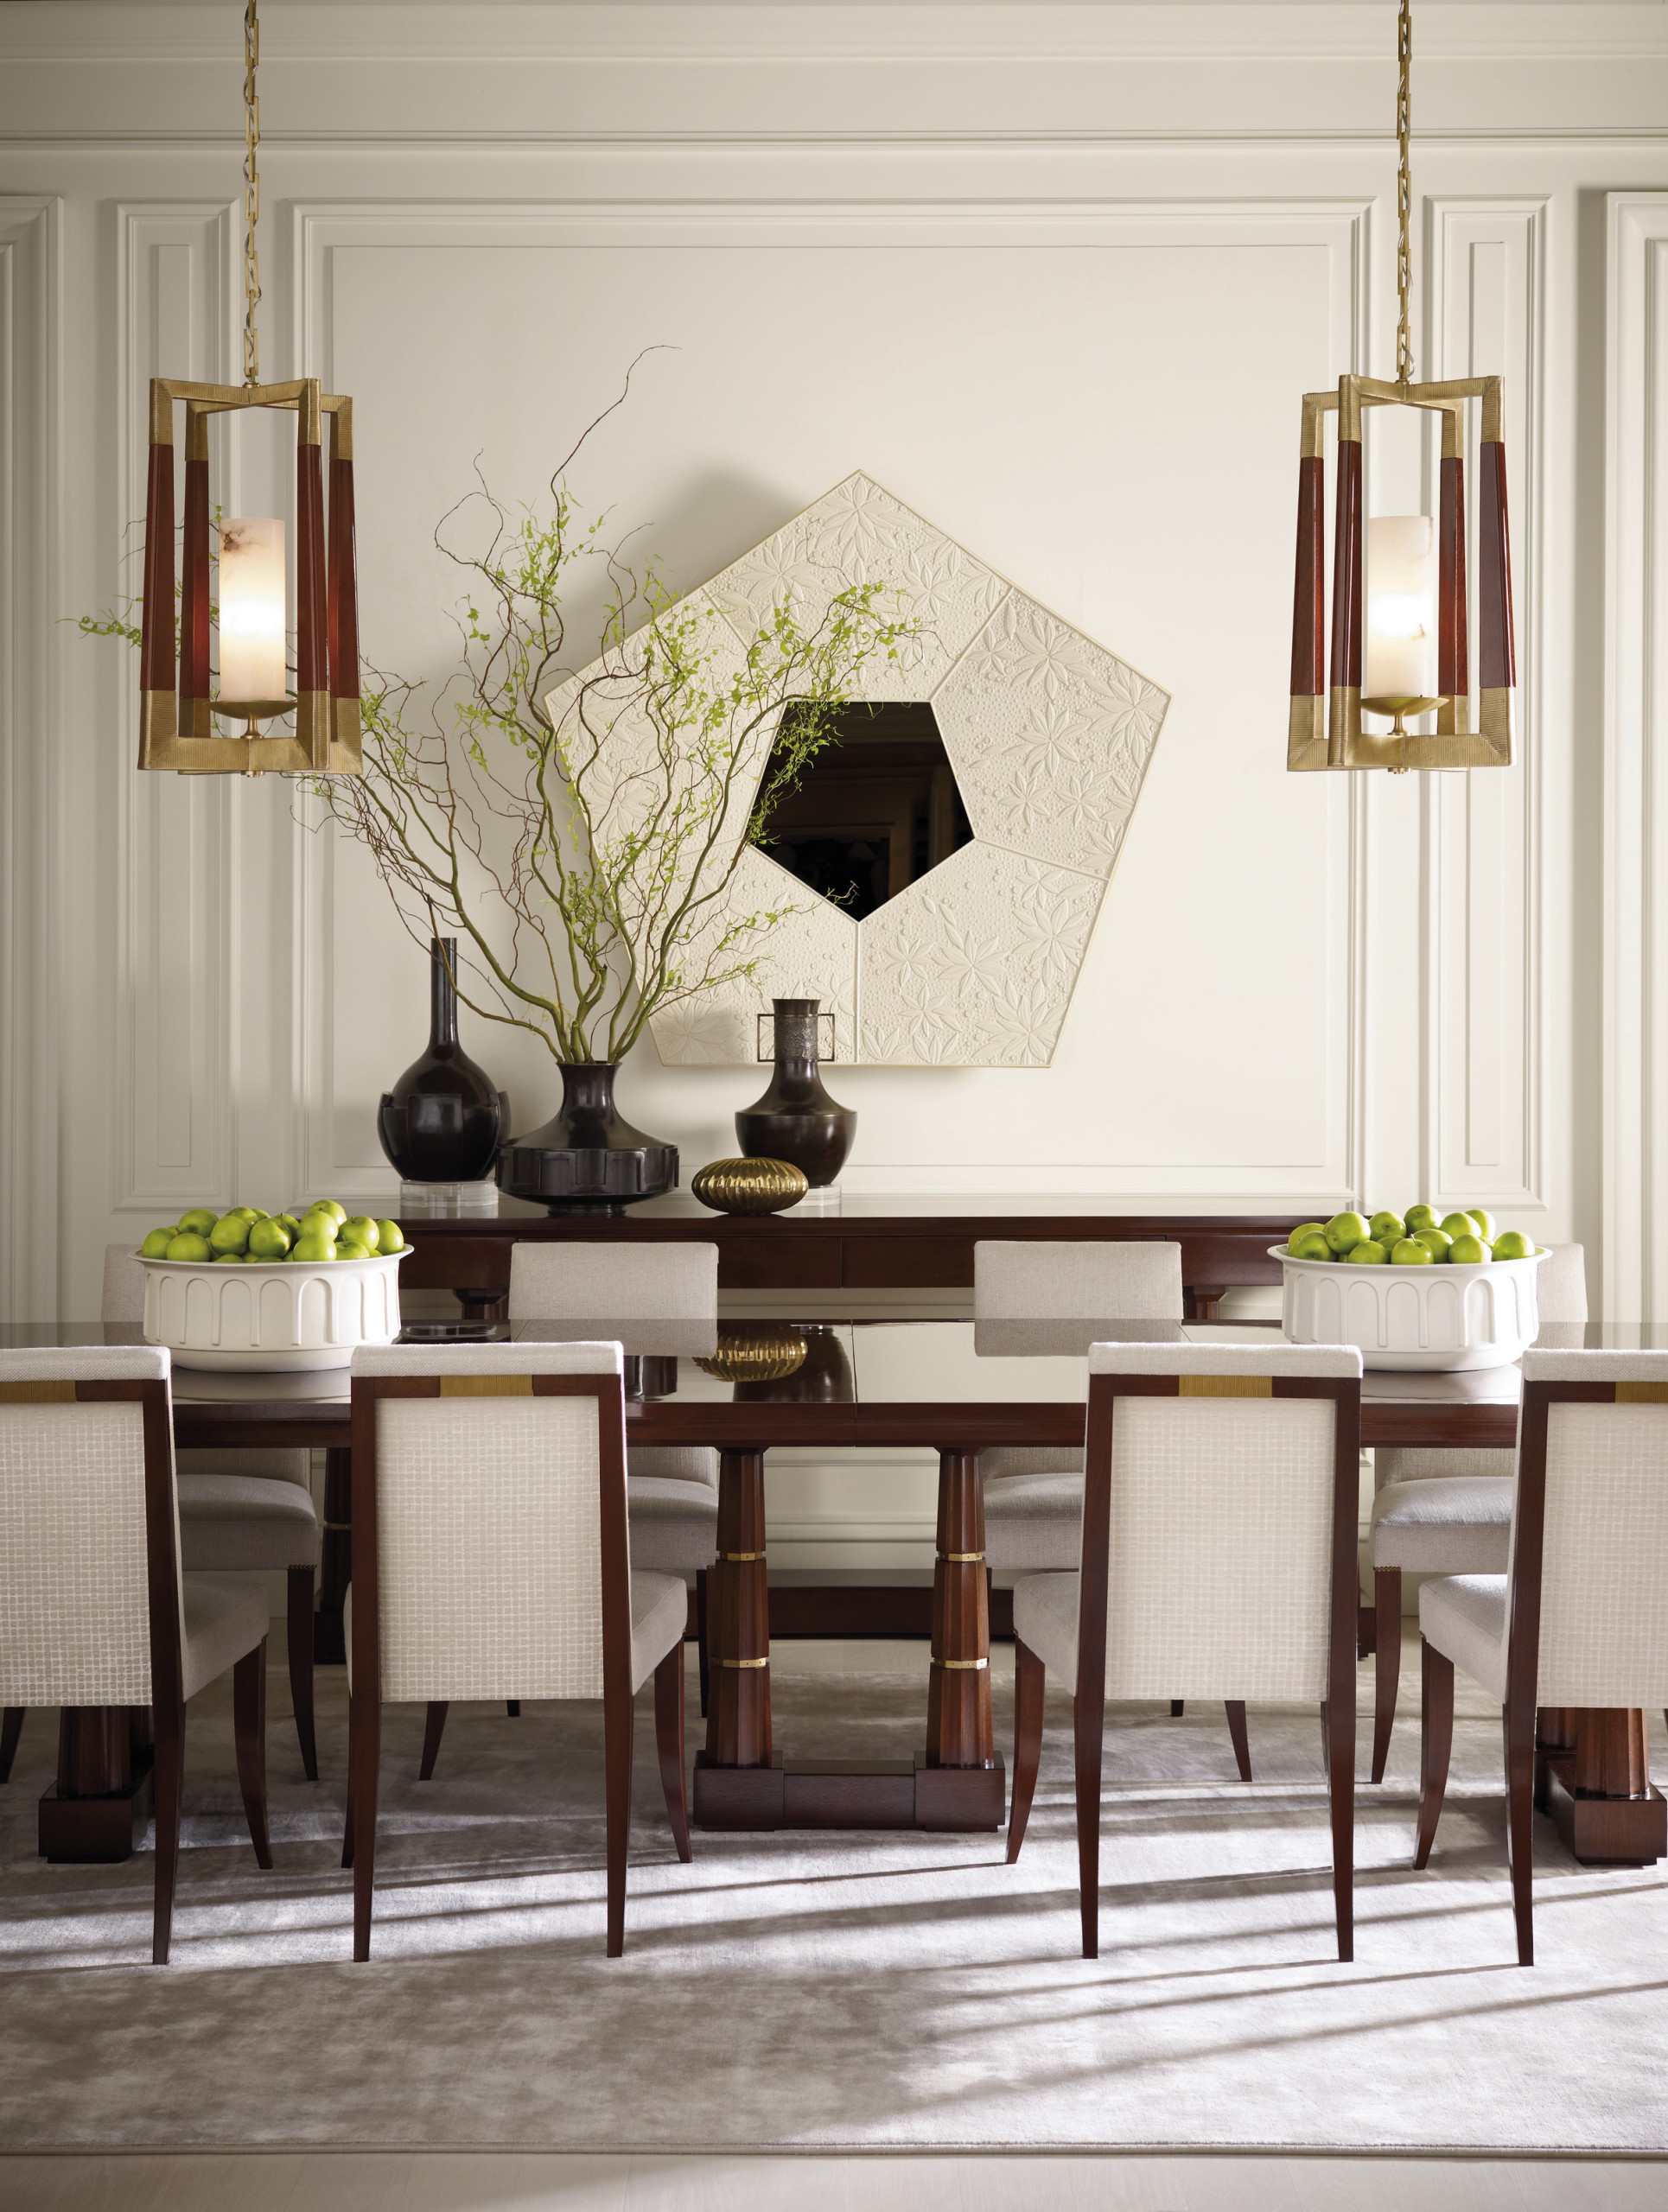 The Thomas Pheasant Collection Baker Furniture Modern Dining Room Milwaukee By Baker Furniture Houzz